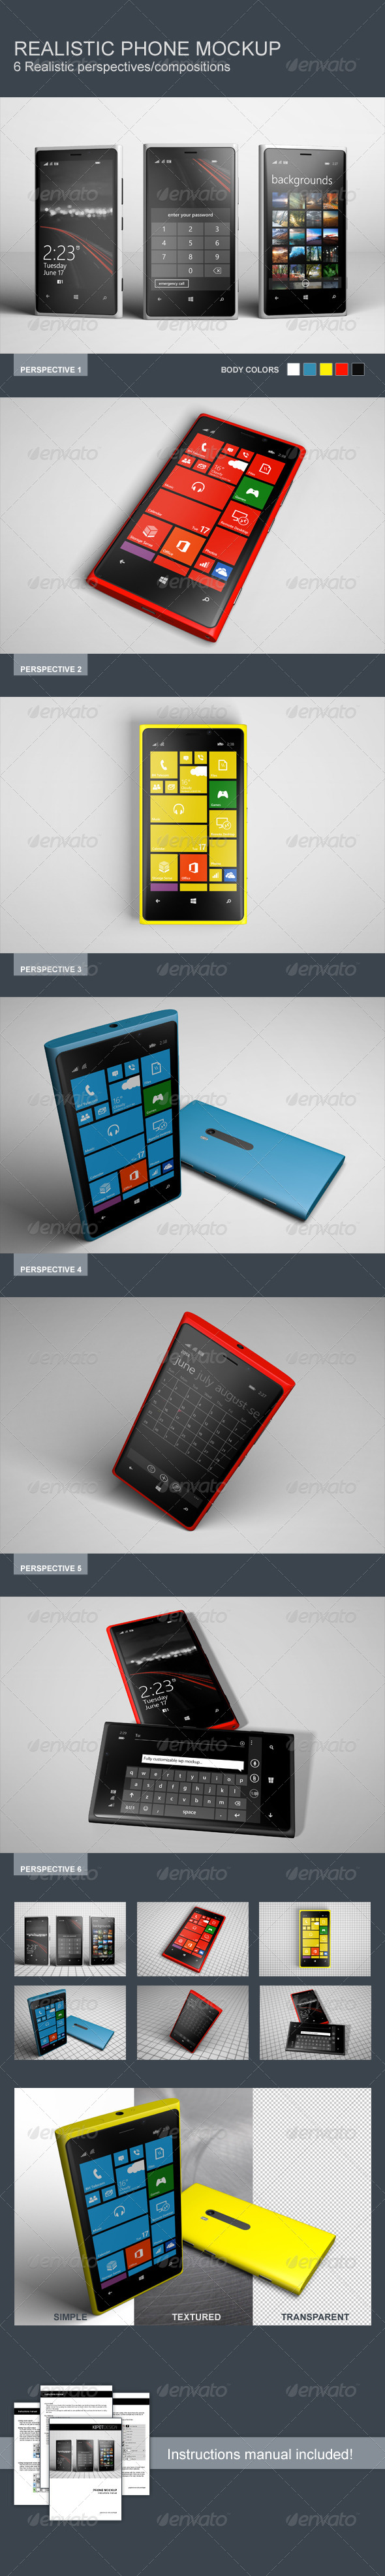 GraphicRiver Realistic Phone Mockup 8070217